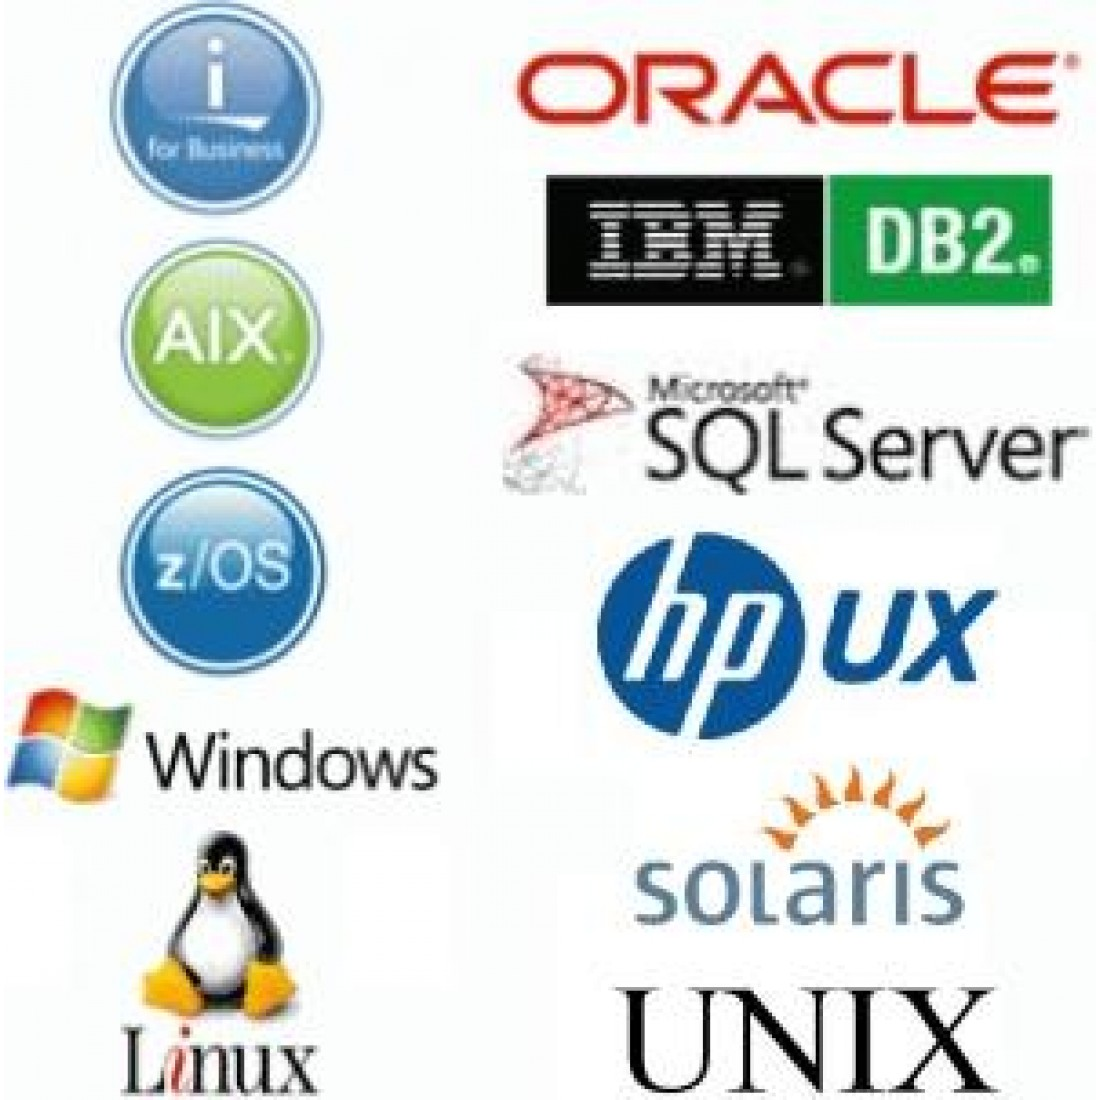 Job Scheduler Software Oracle SQL iSeries AS400 Windows AIX